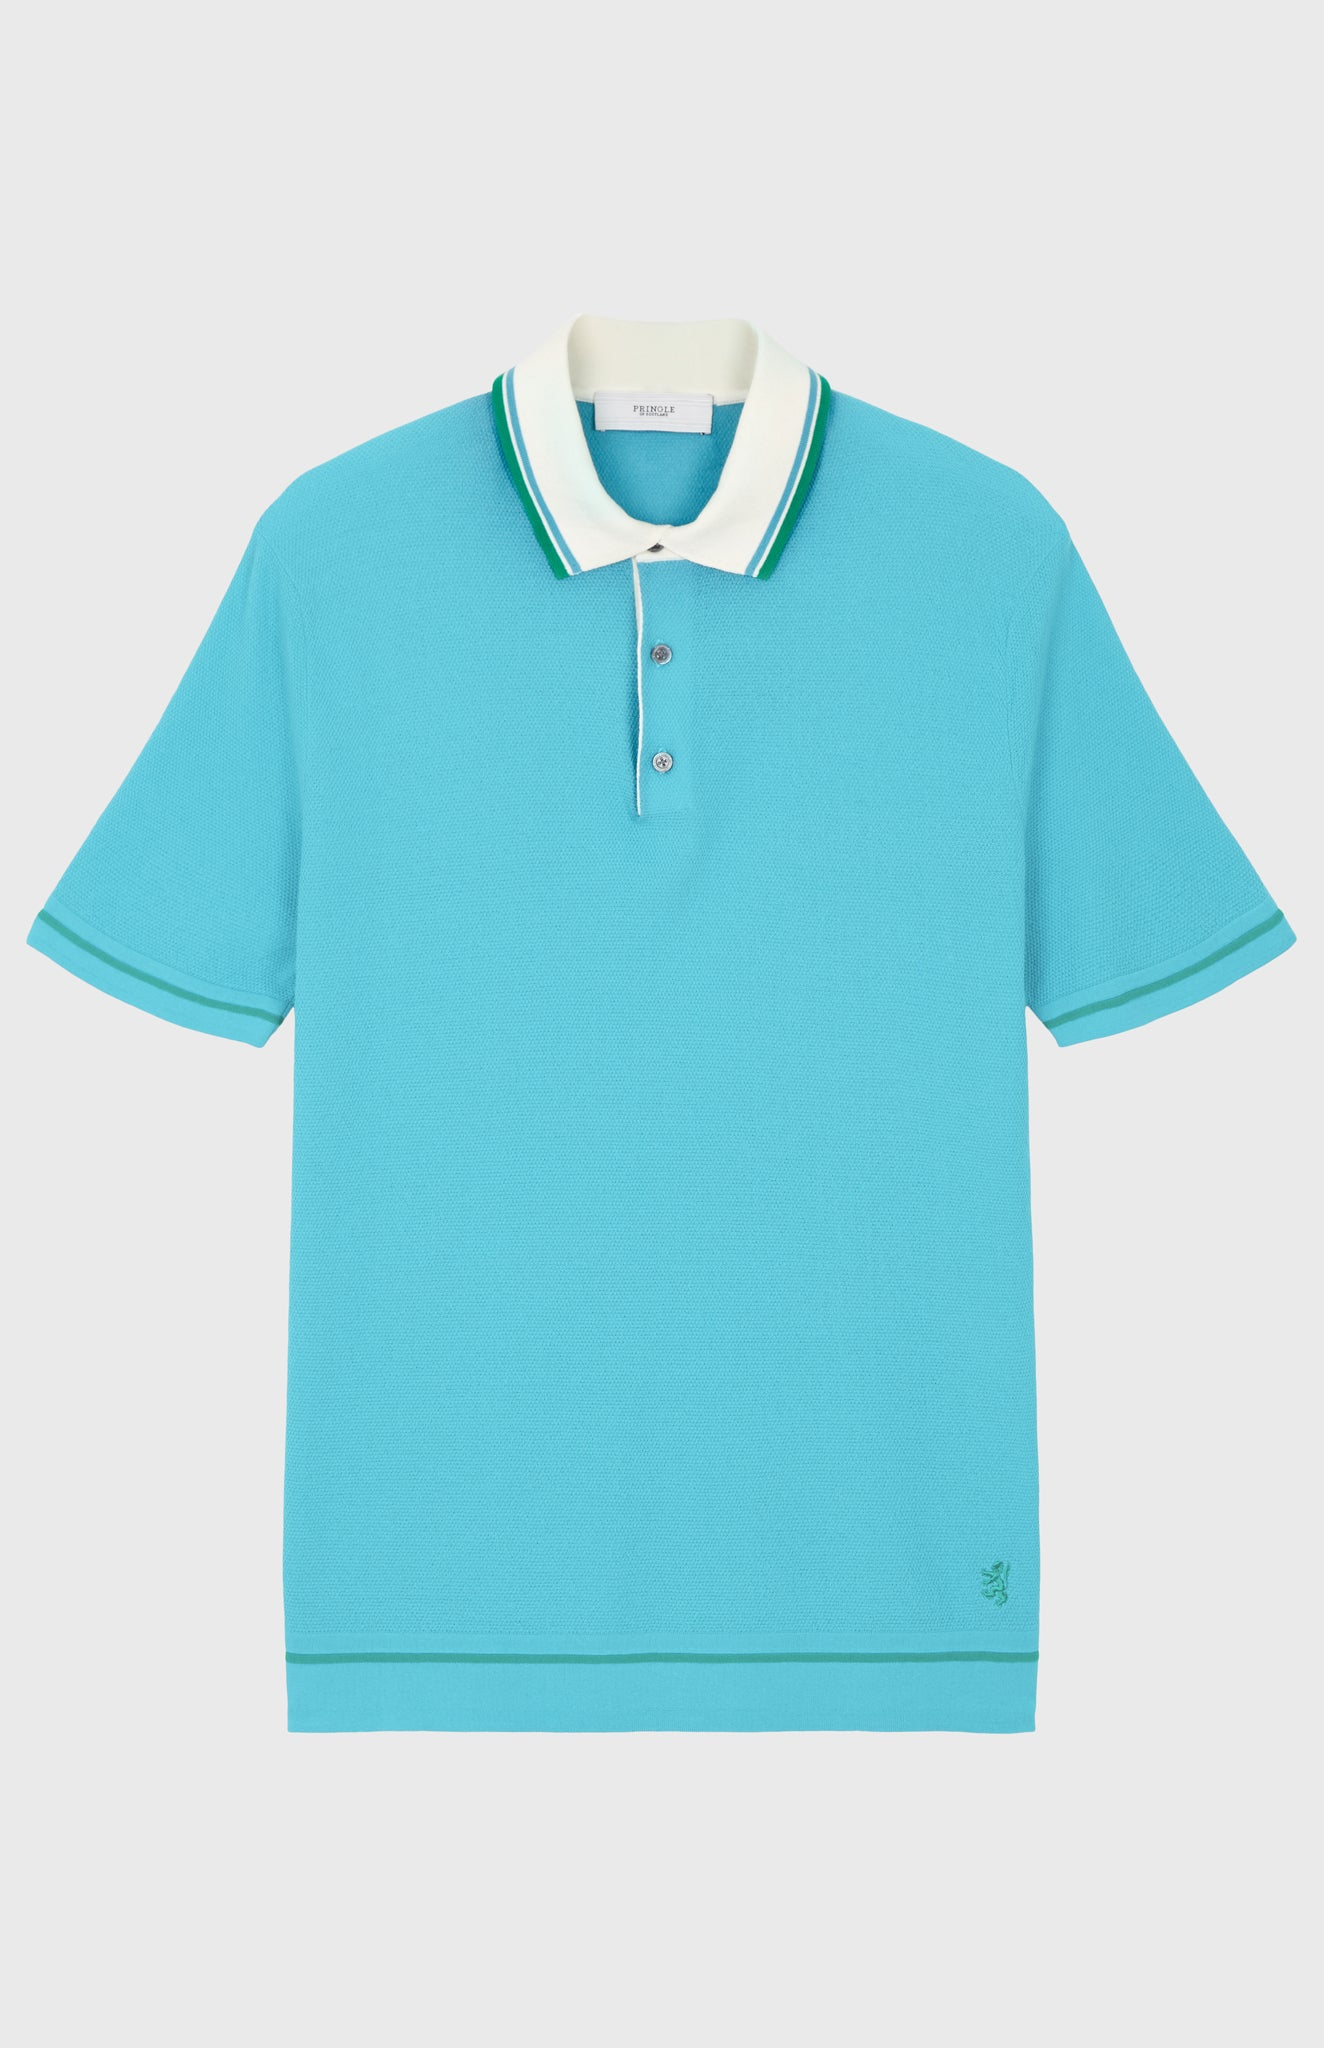 Contrast Tipped Cotton Polo Shirt In Blue/White